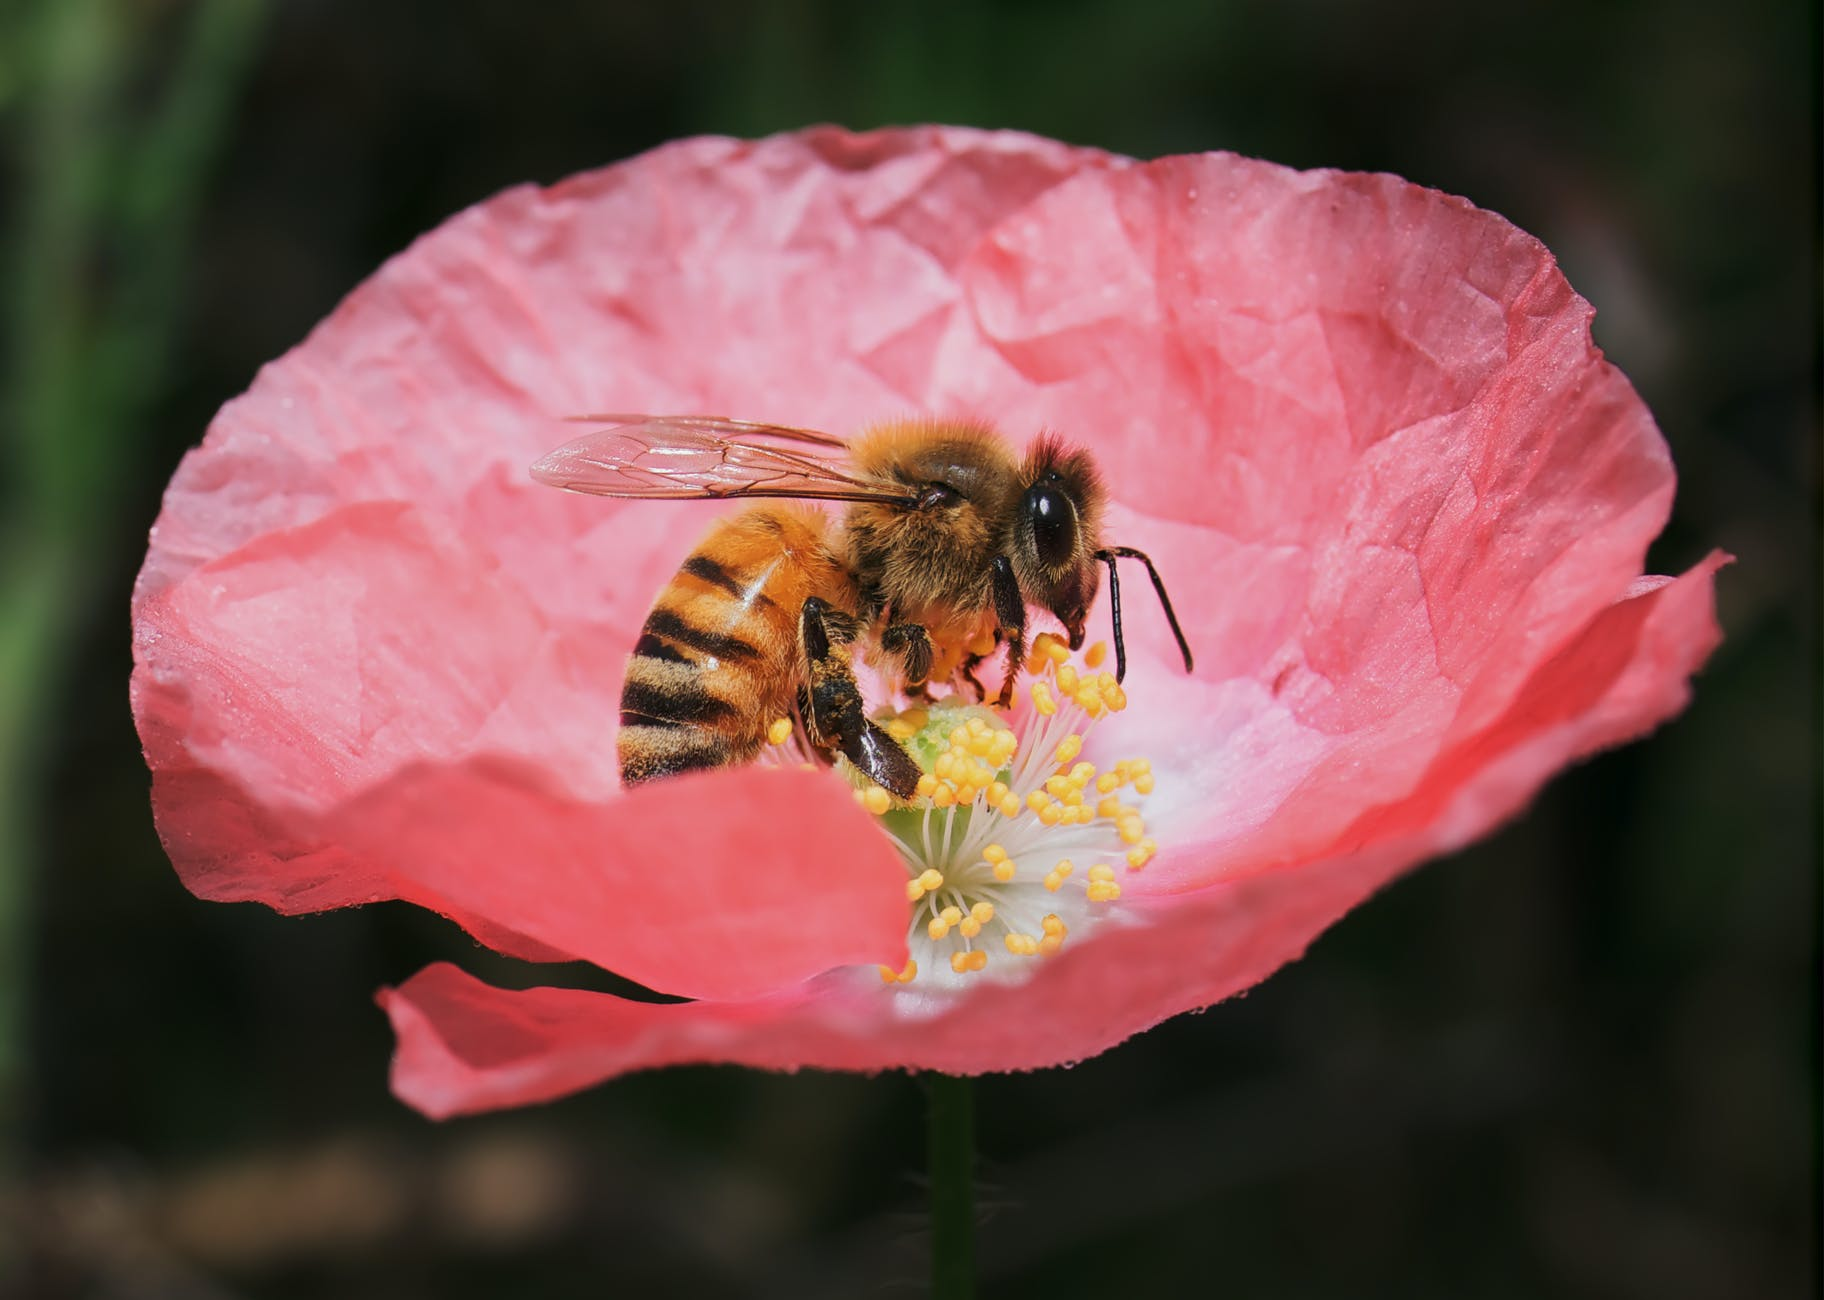 close up photo of bumblebee on flower